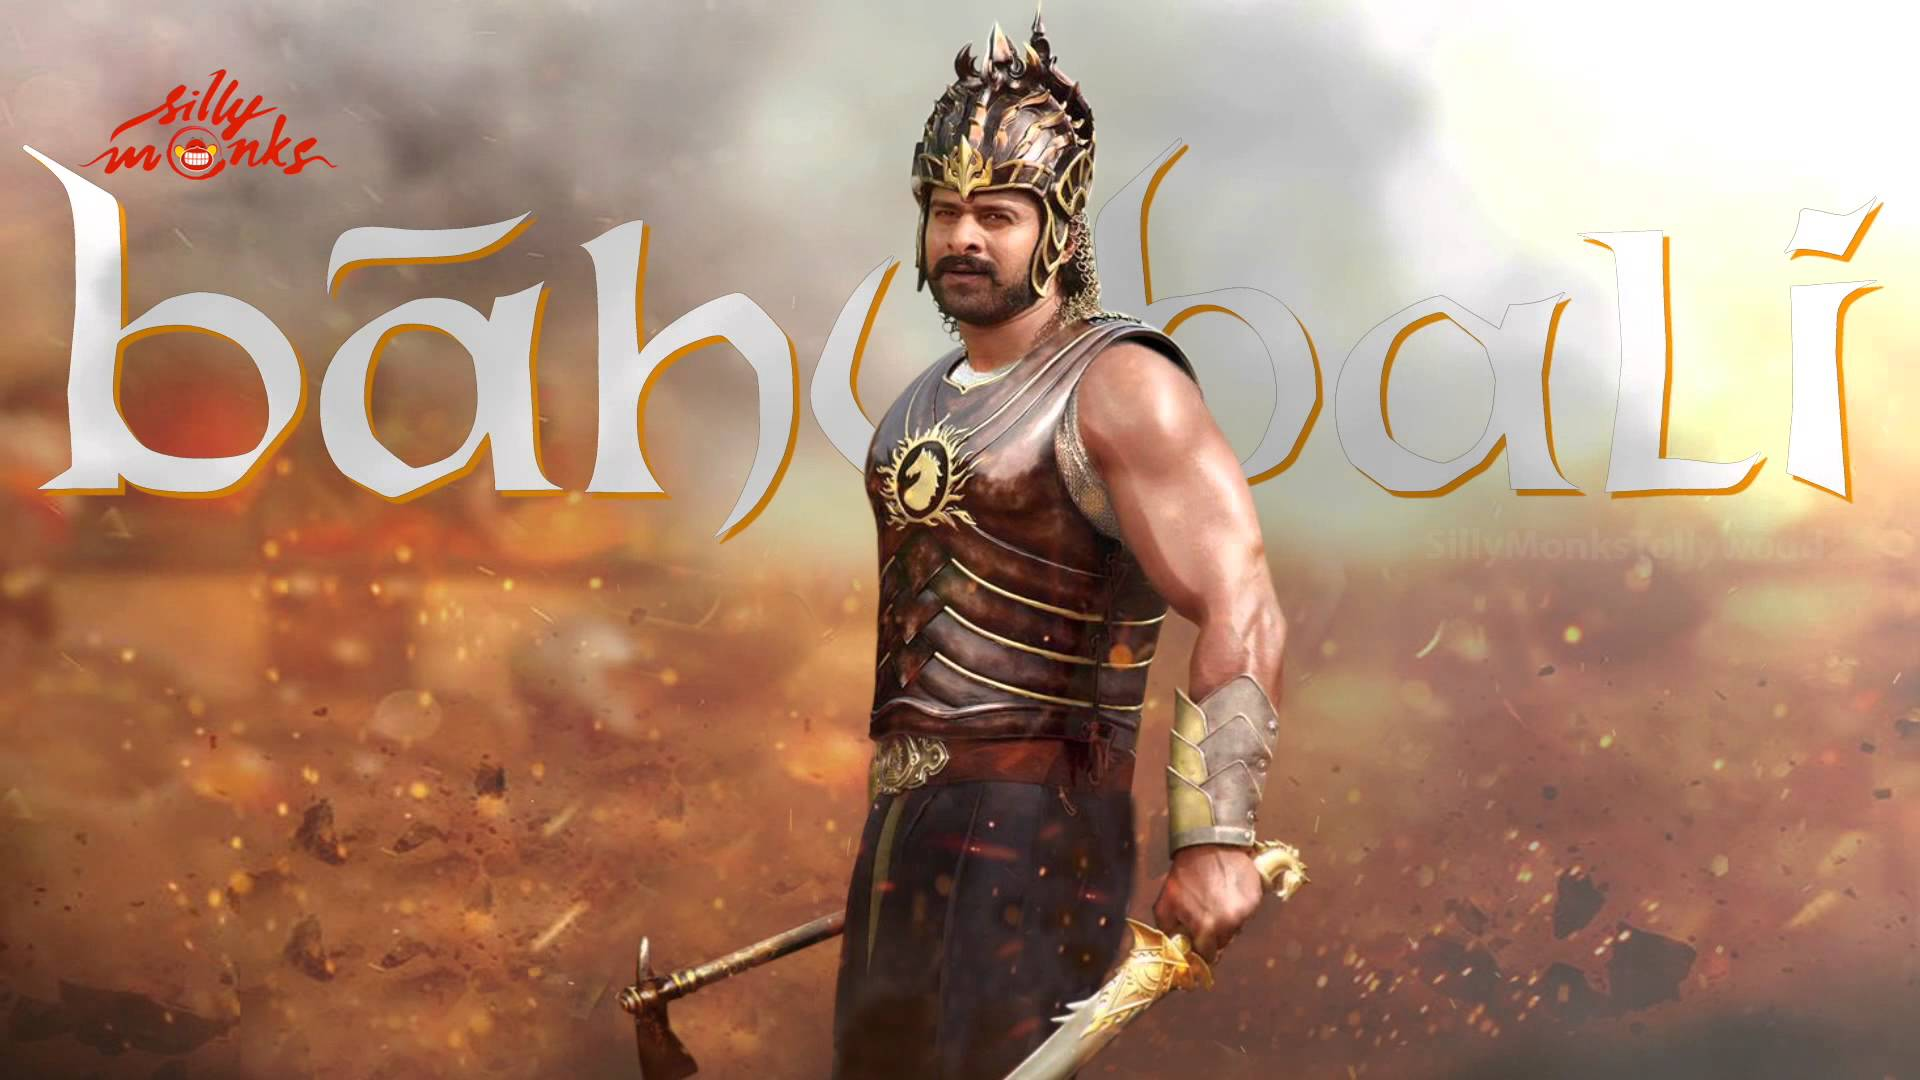 Baahubali movie advance ticket booking